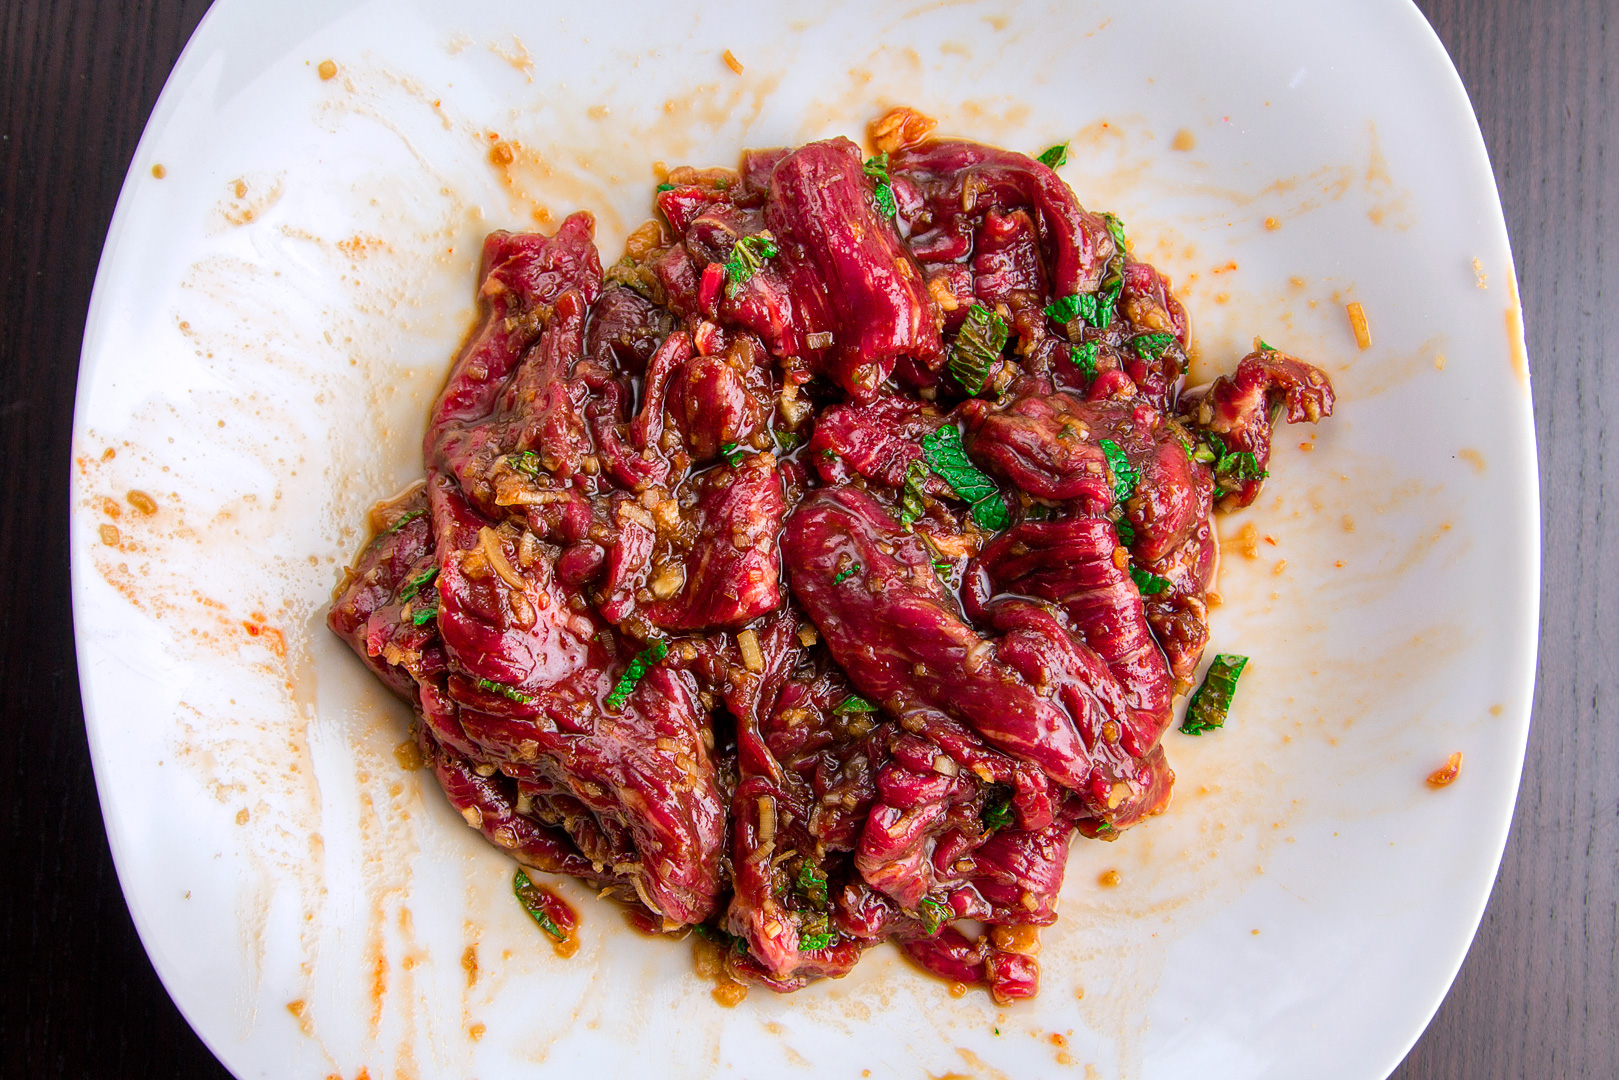 Gorgeous looking marinade with aromas of Lemongrass and mint.